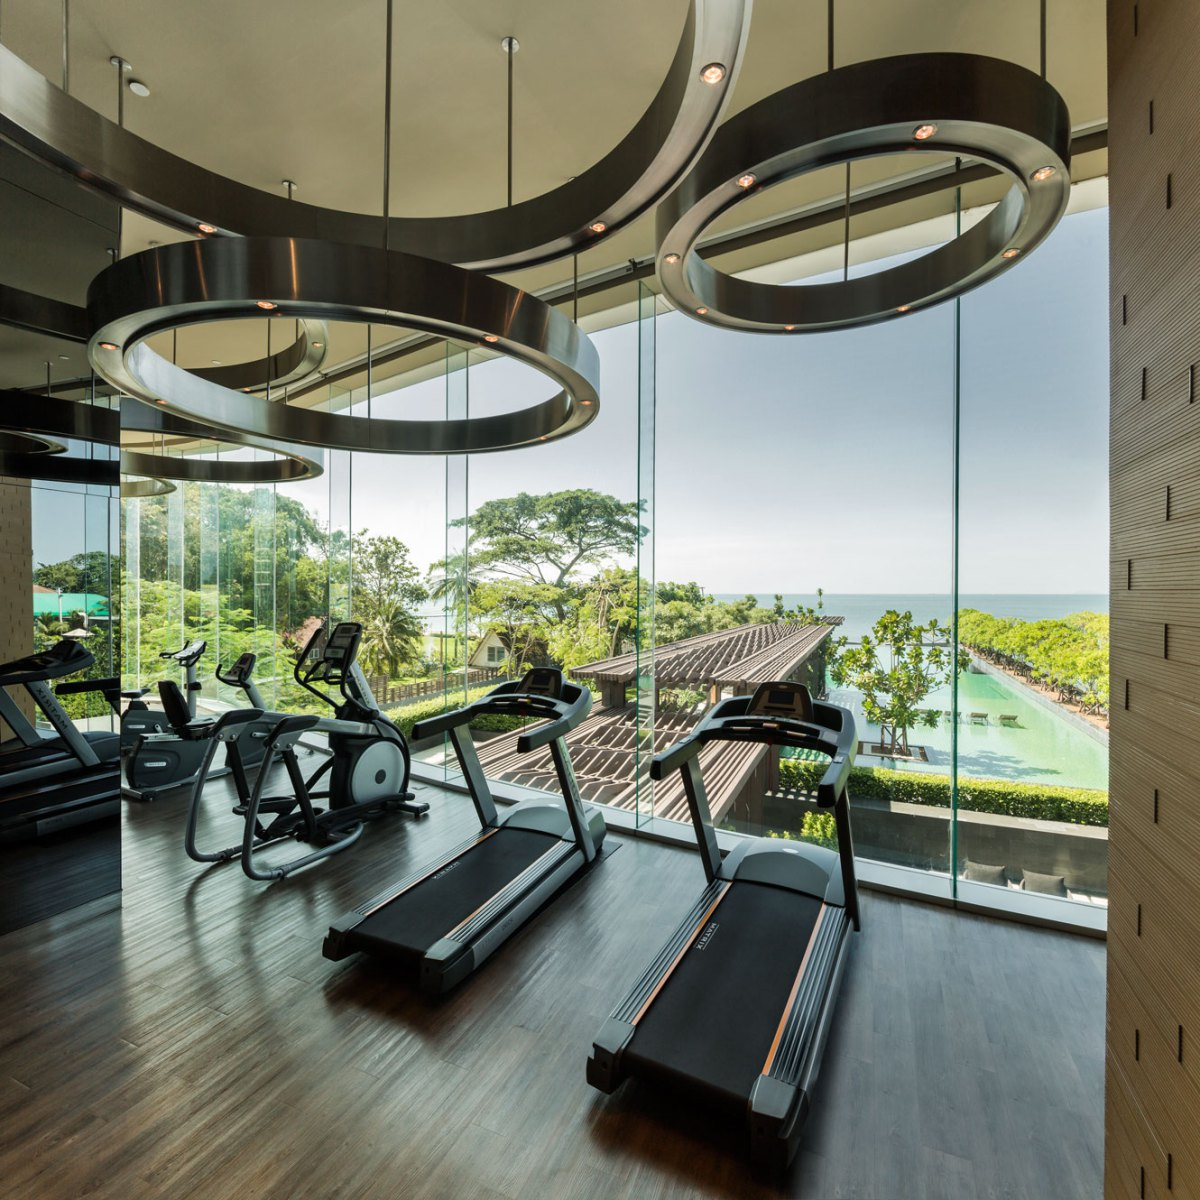 Home Gym Design: Luxury Beachfront Condo Development In Pattaya